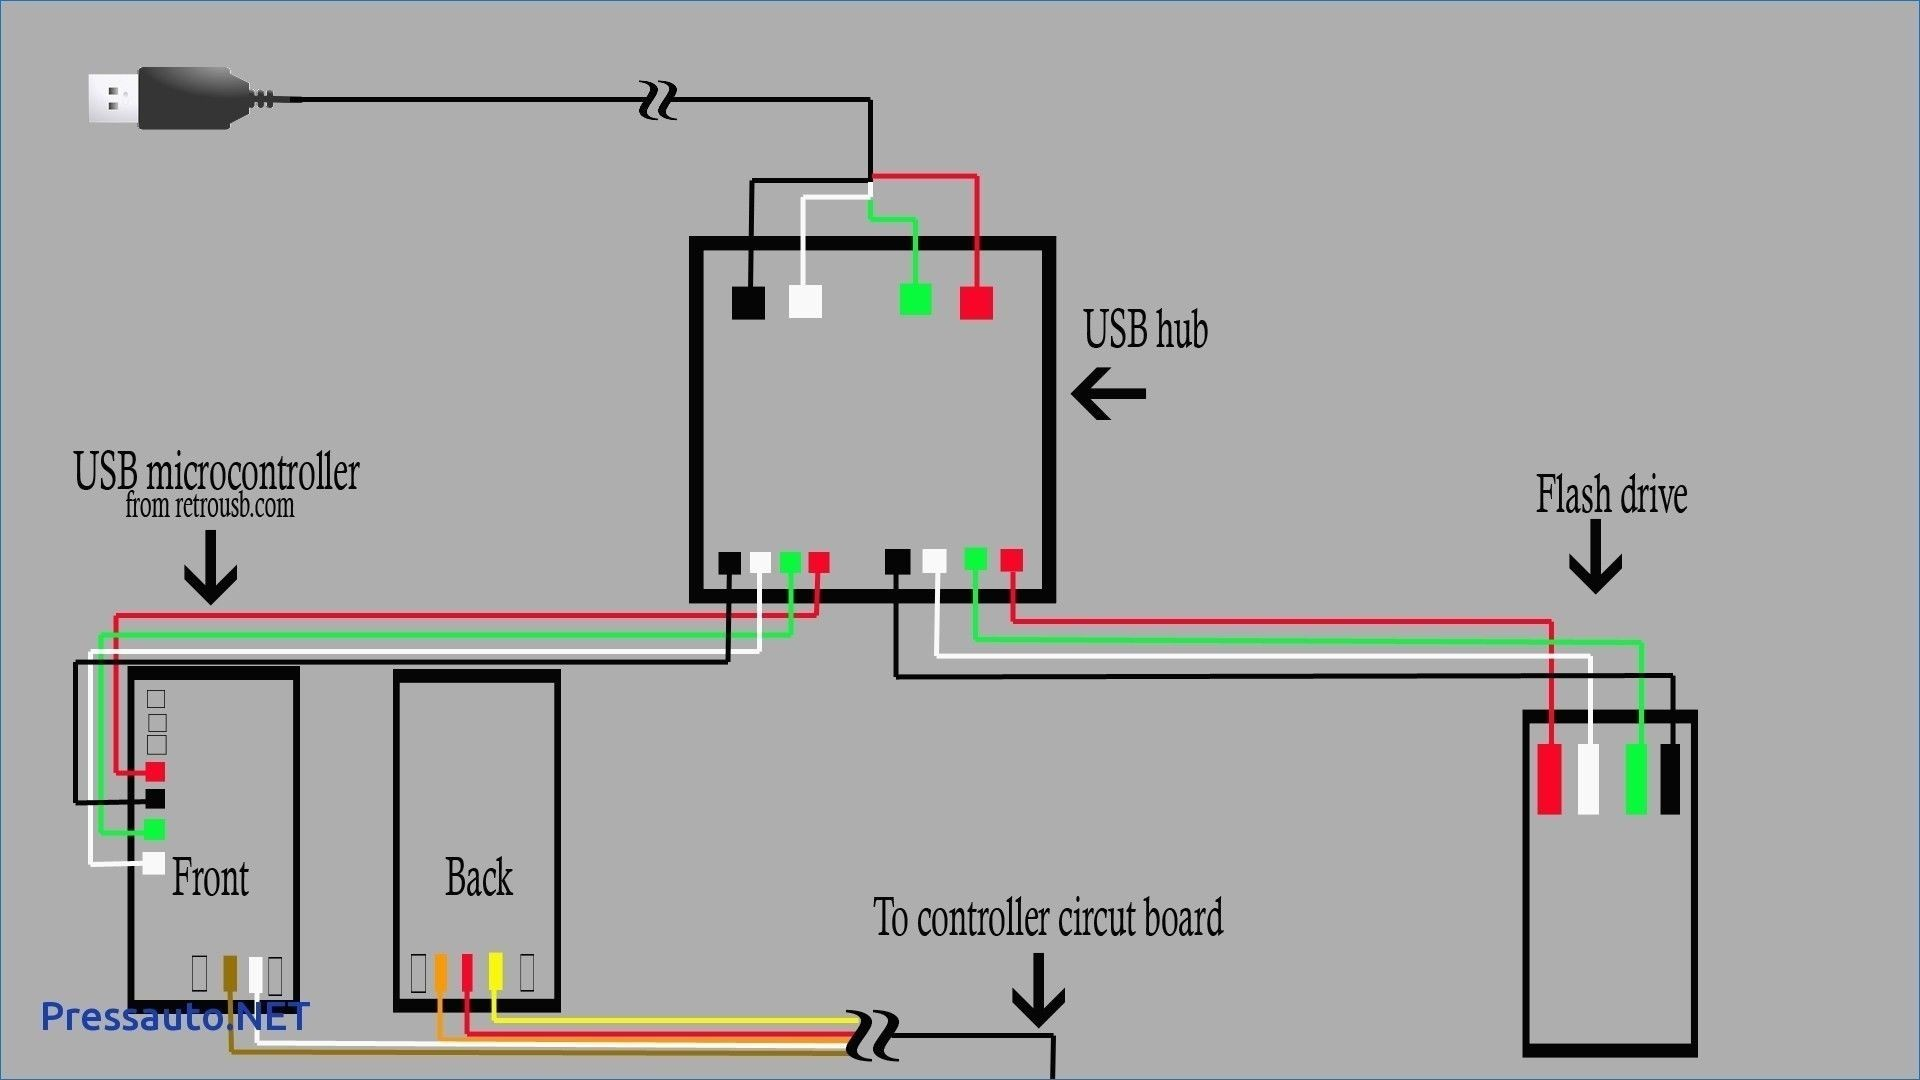 2 Prong Flasher Wiring Wiring Diagram Vga to Hdmi New Great Rca Cable Gallery Of 2 Prong Flasher Wiring